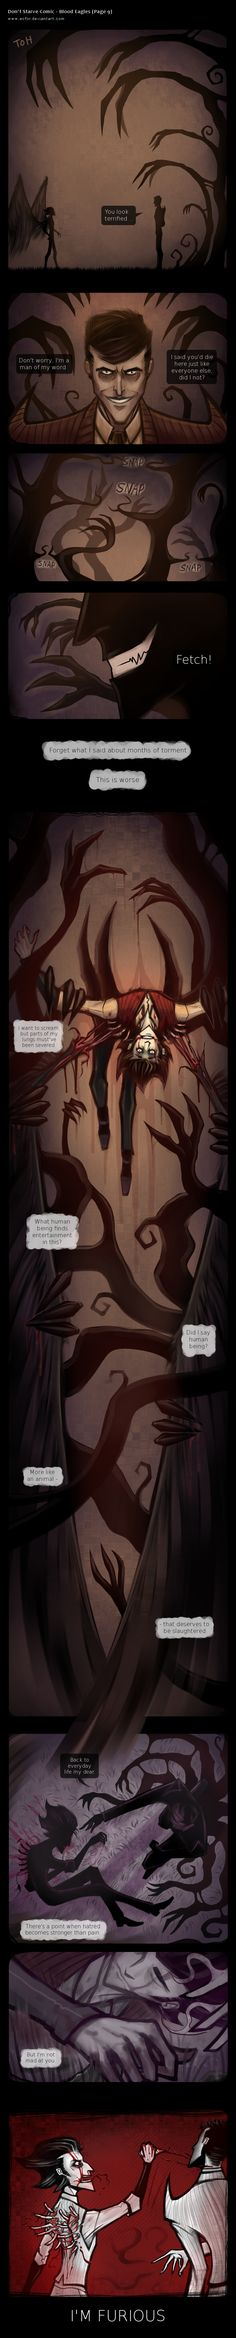 Don't Starve Comic - Blood Eagles (Page 9) by Ecfor on DeviantArt